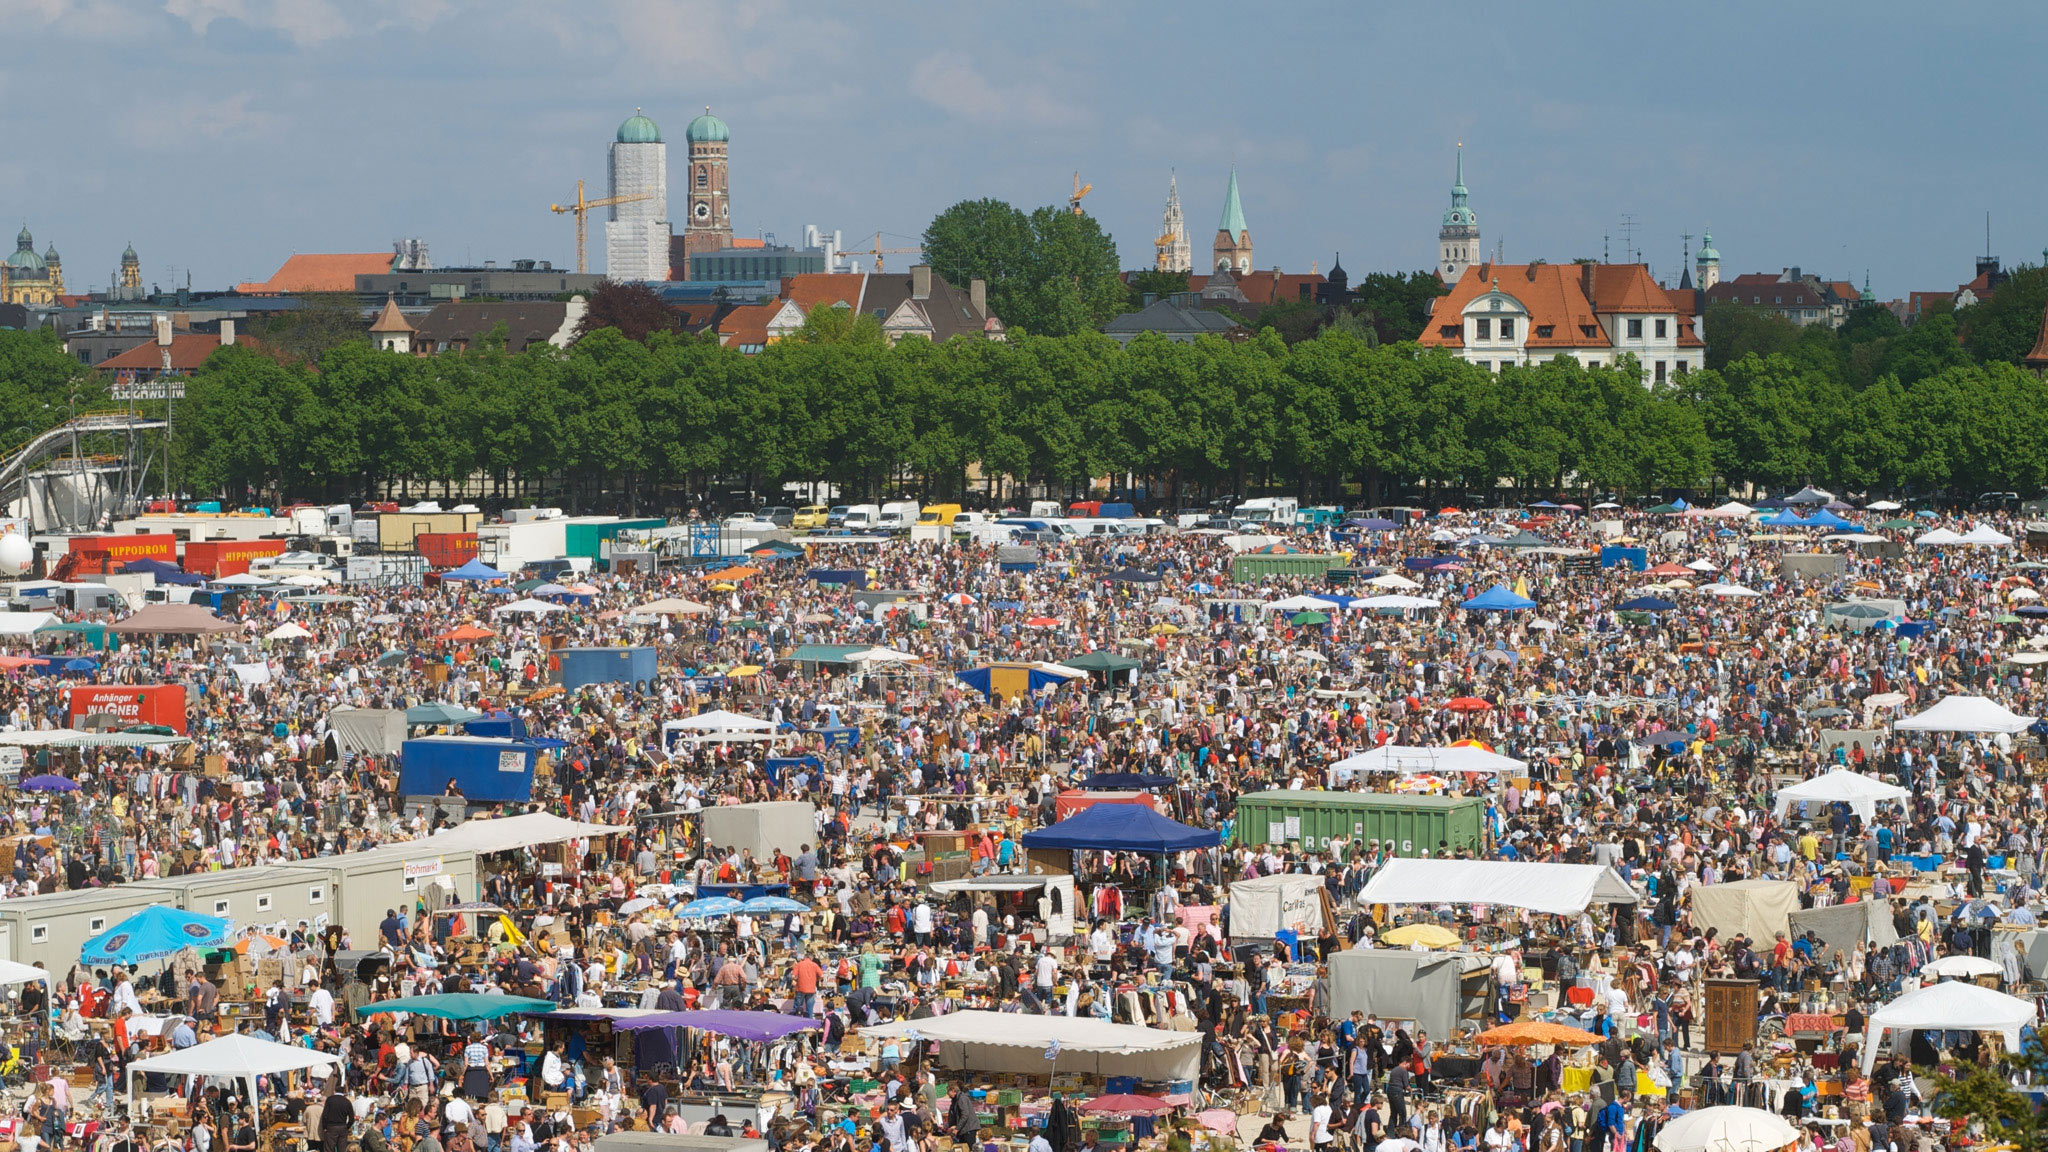 Every April, what might be the world's biggest flea market springs up close to where Oktoberfest goes down later in the year. Beer or bargains, the area always seems to draw a crowd.